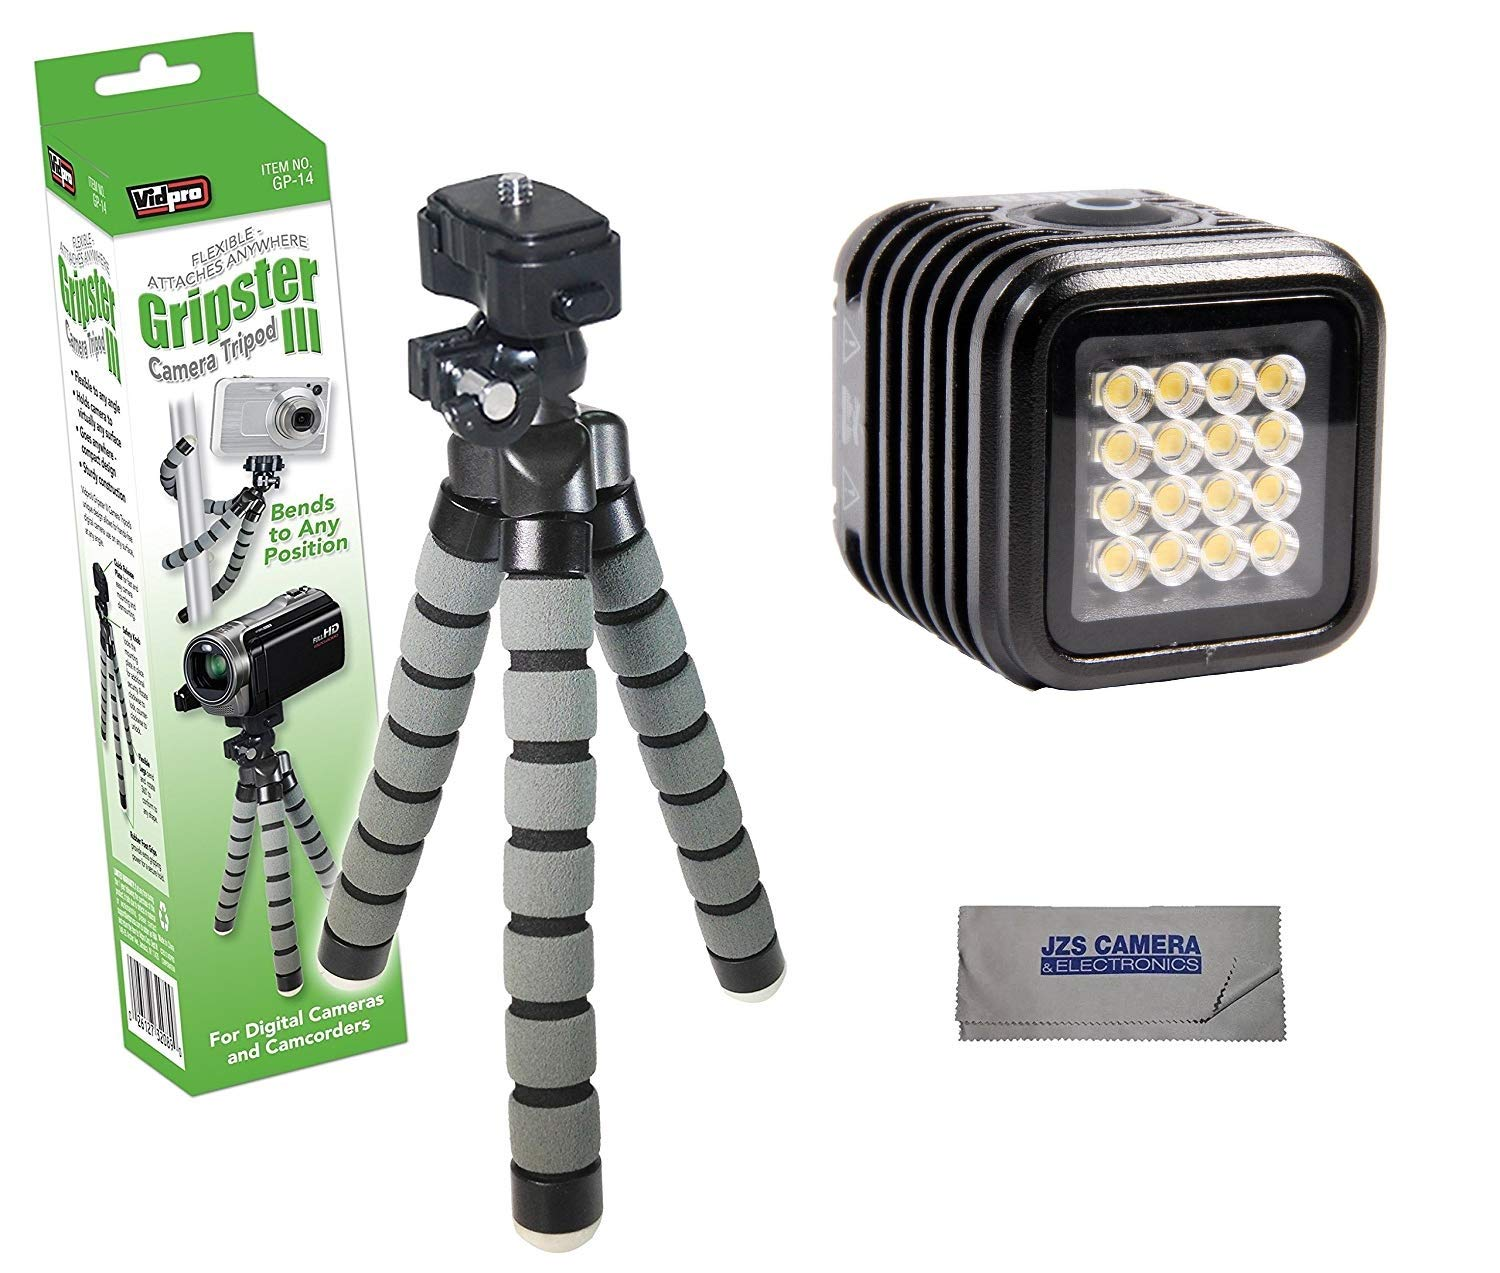 LitraTorch 2.0 Waterproof Dimmable 16-LED Video Light for Smartphone Cameras Bundle with VidPro GP-14 Tripod Kit